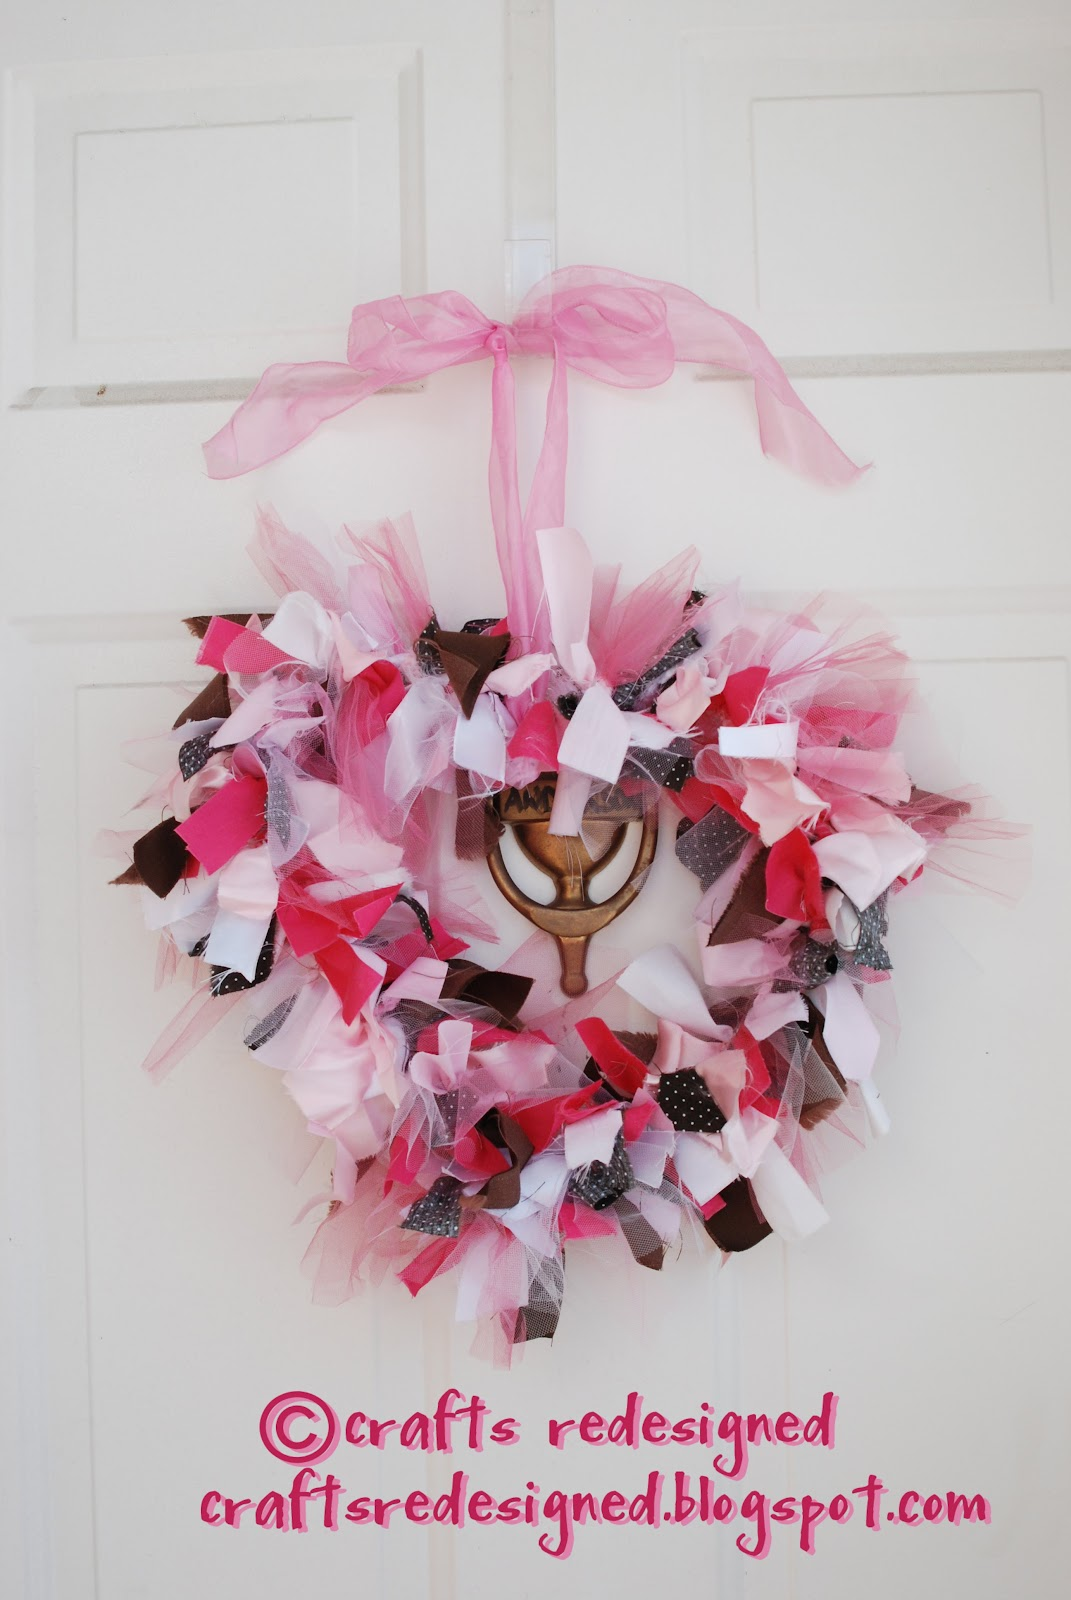 Crafts Redesigned Valentine Door Wreath